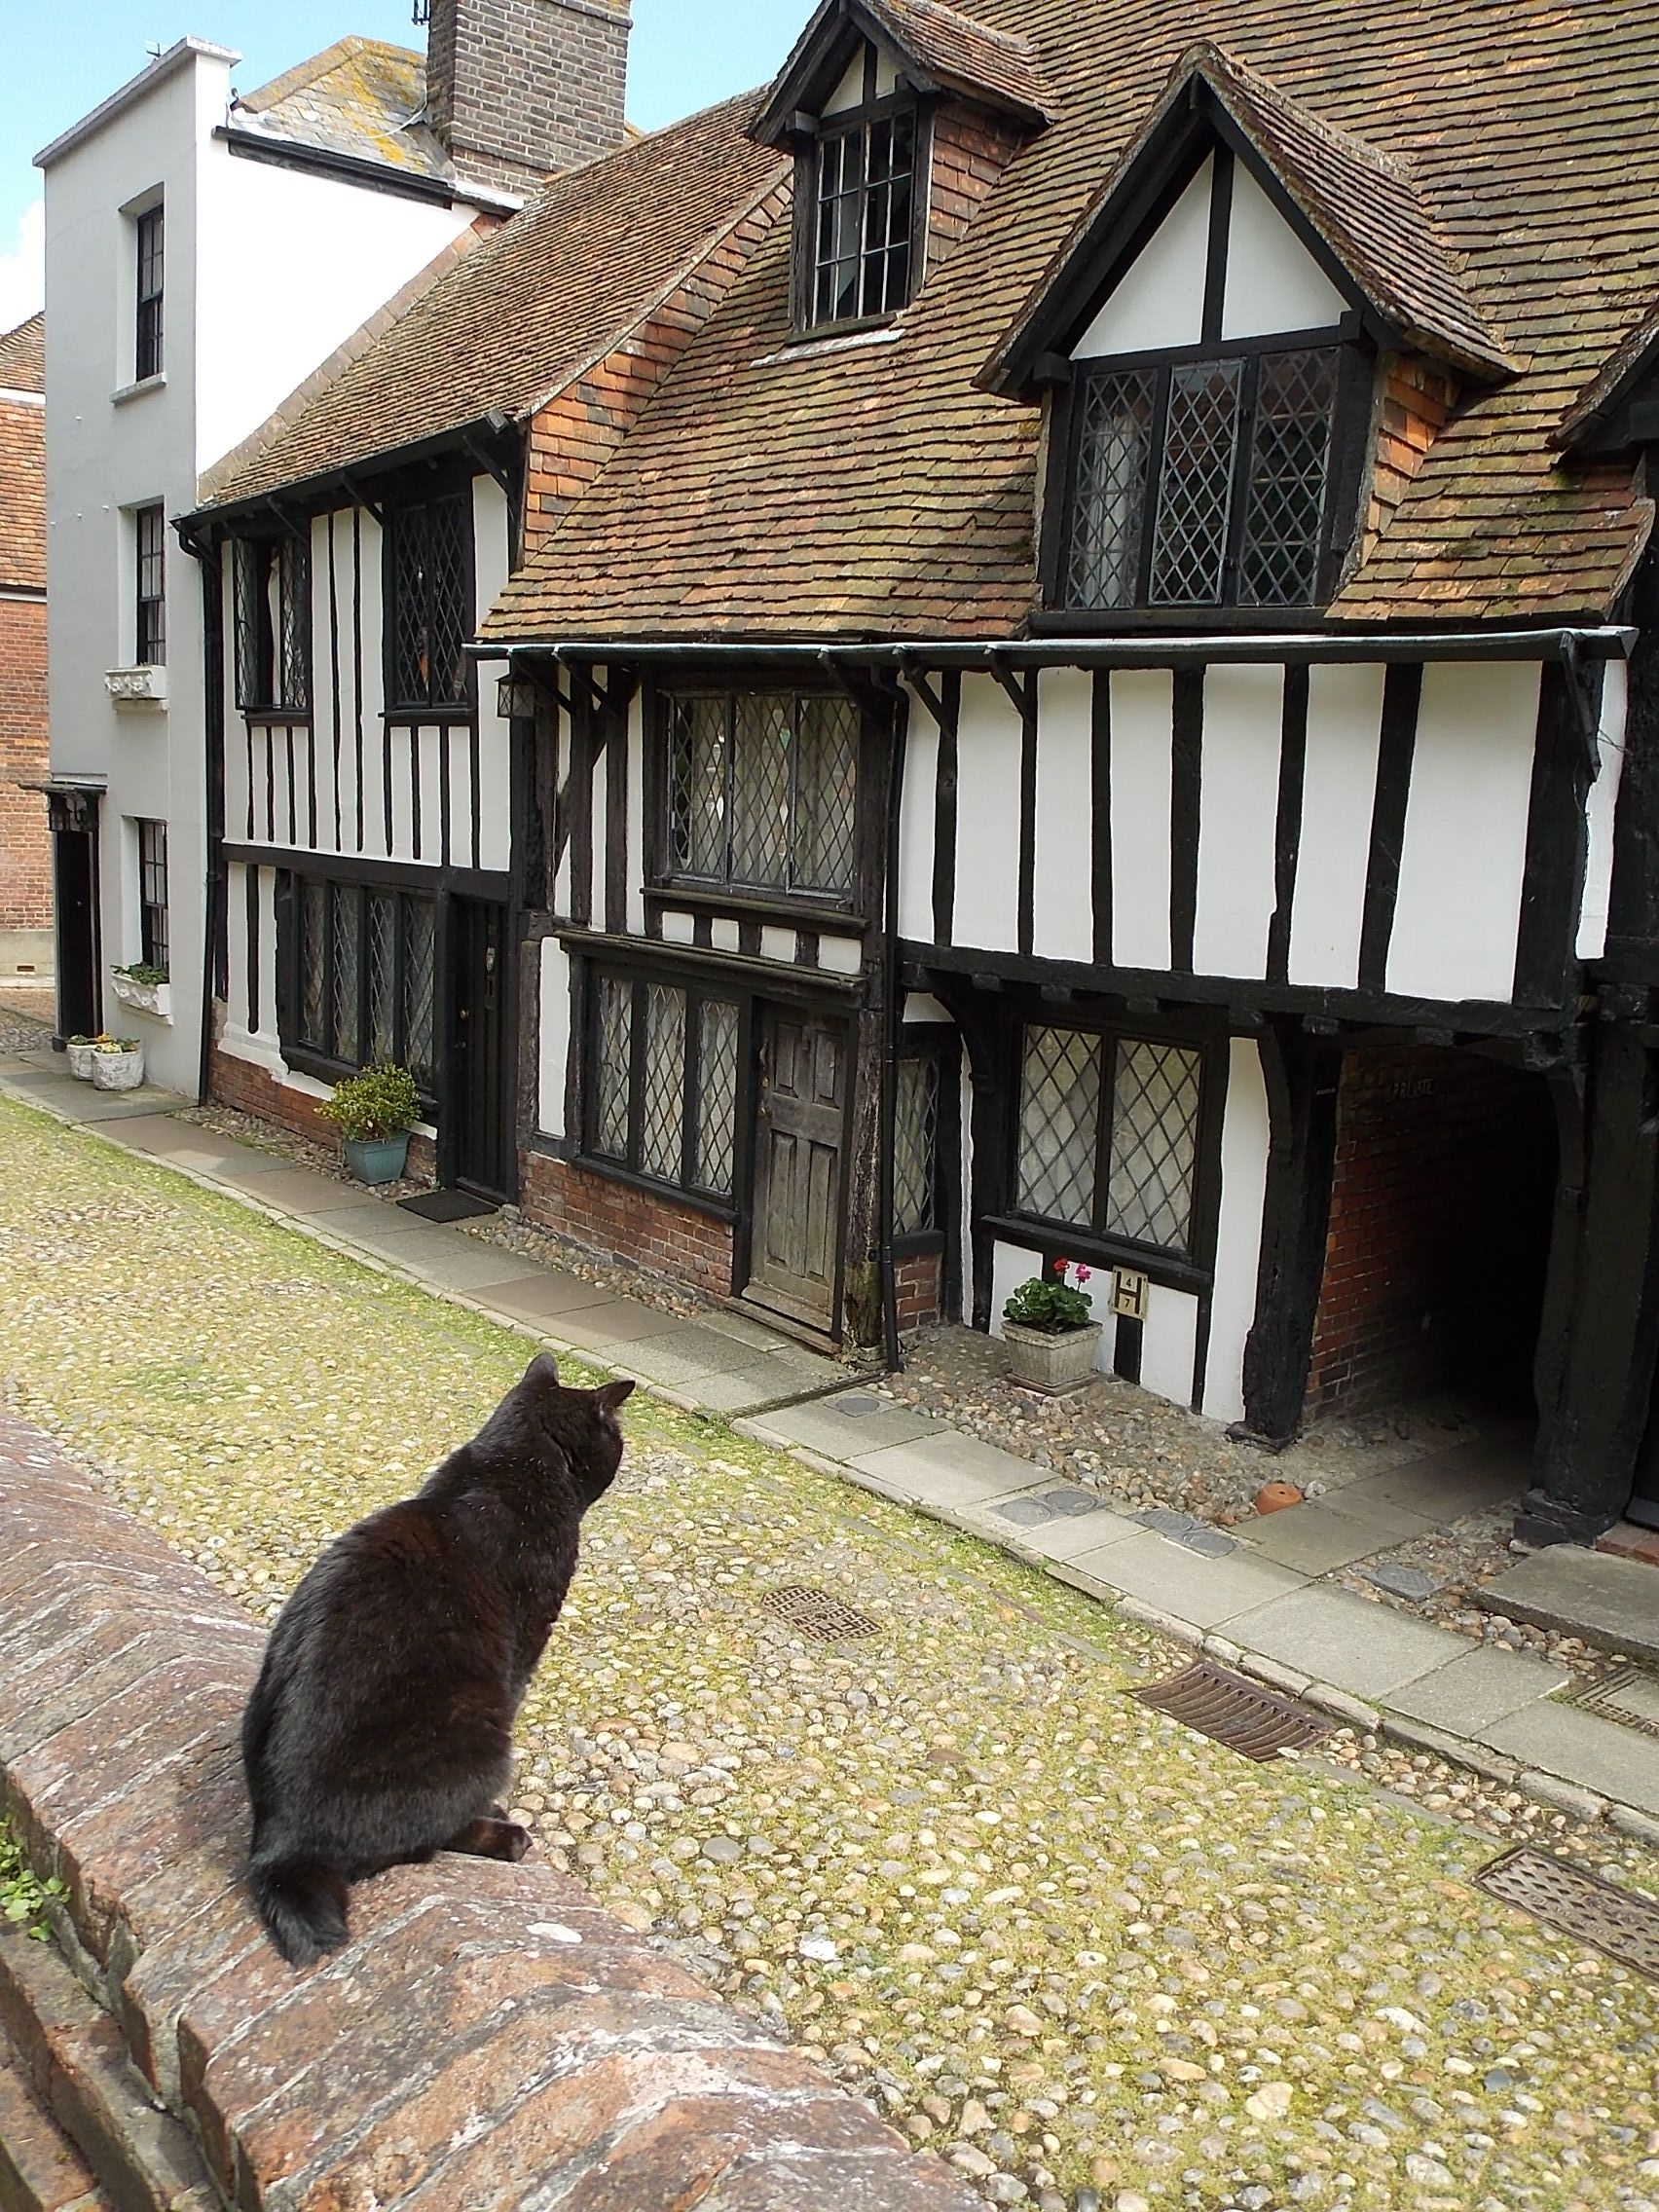 The Church Street cat sitting on the wall of the 900 year